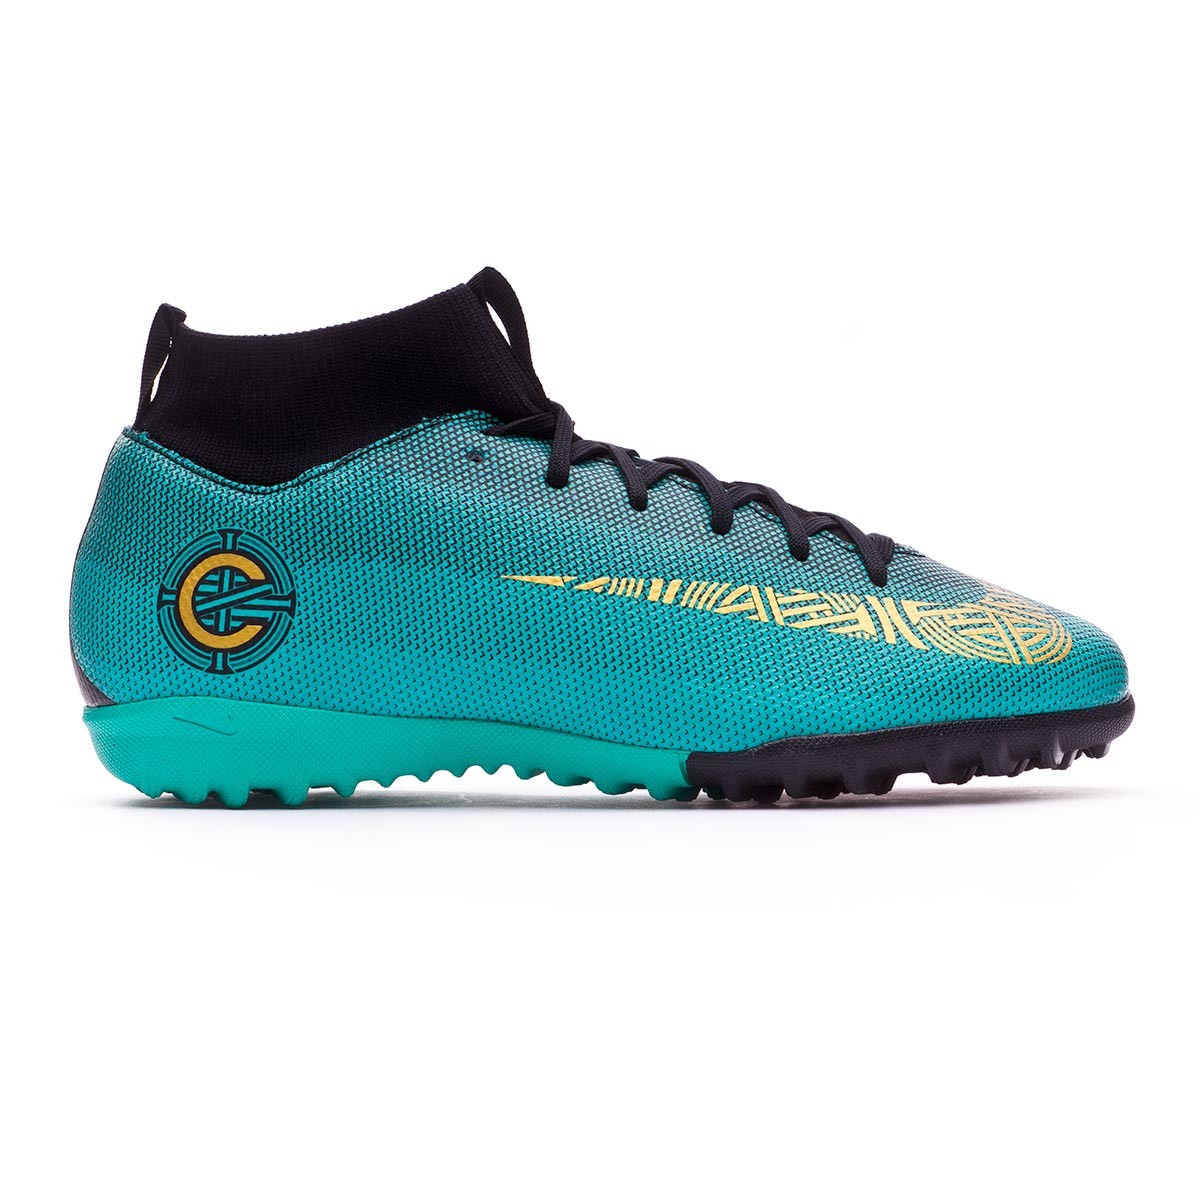 2809ac57cd3f0 Football Boot Nike Kids Mercurial Superfly VI Academy GS CR7 Turf Clear  jade-Metallic vivid gold-Black - Football store Fútbol Emotion